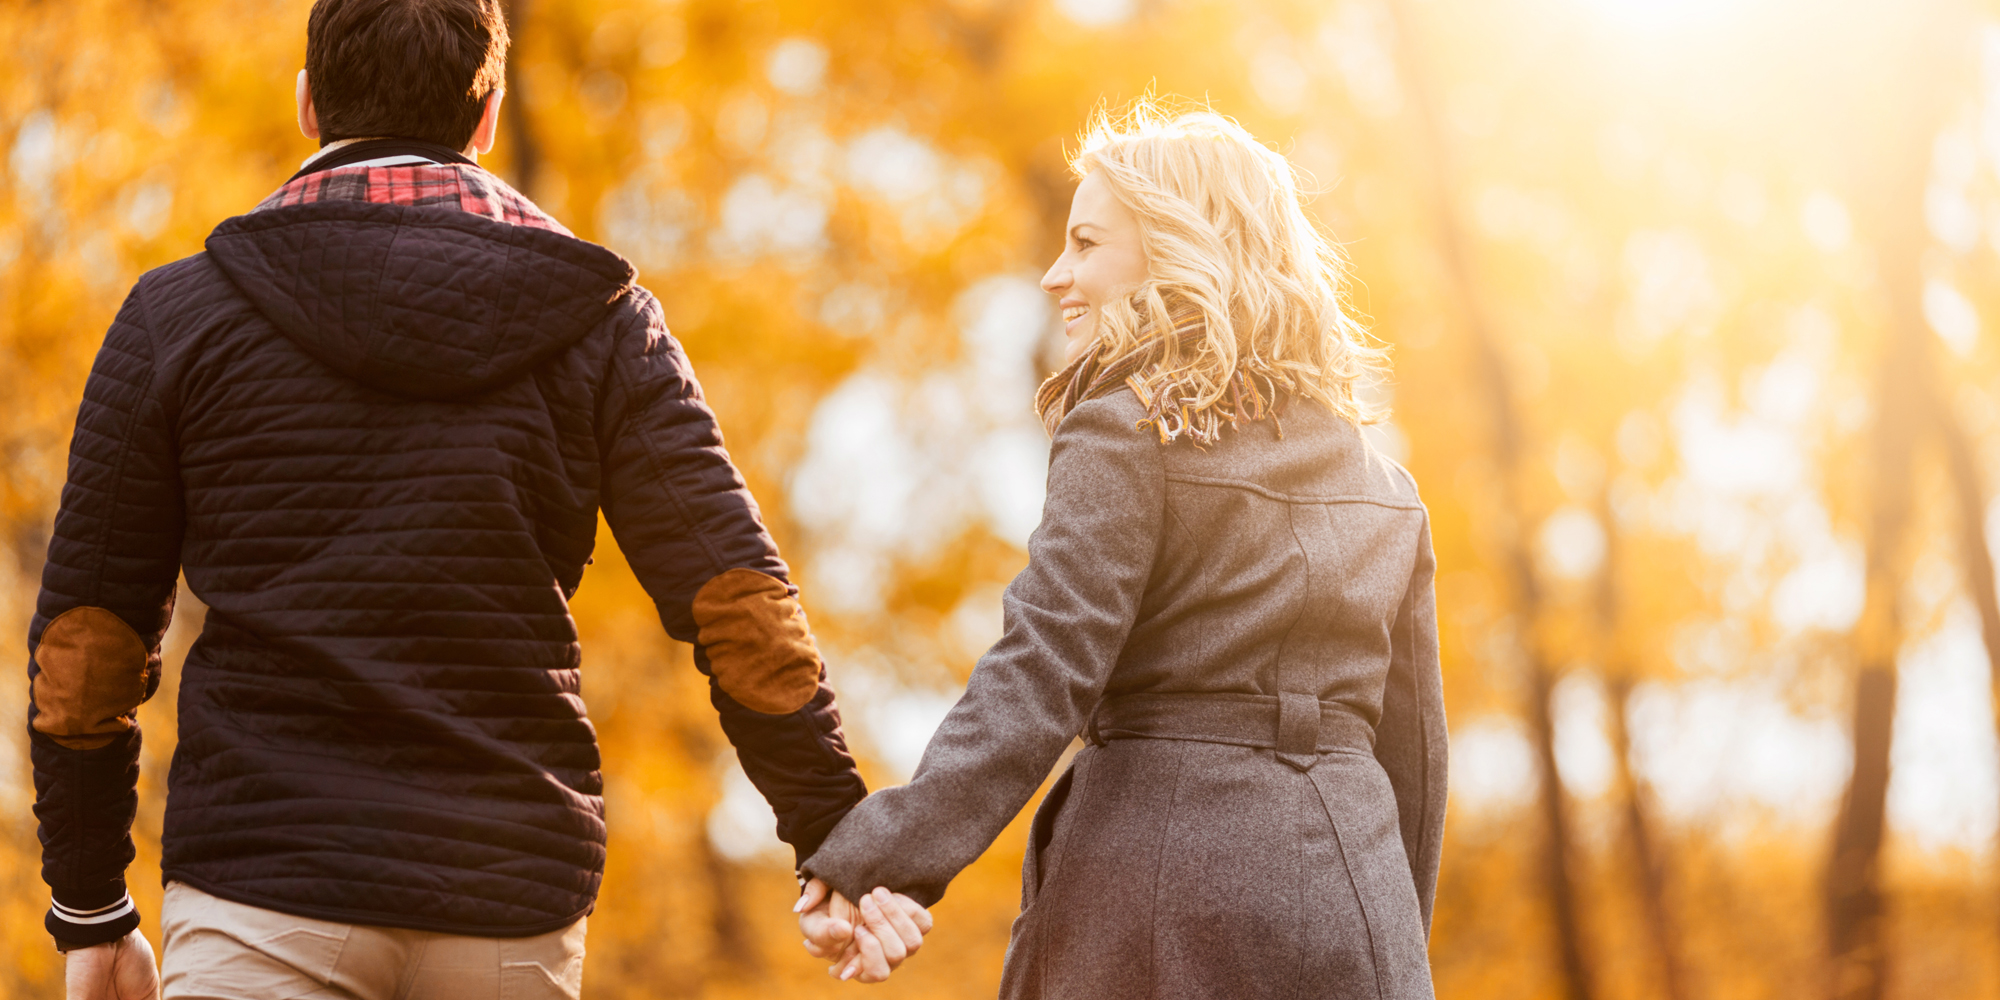 couple dating couple Dr chani and rabbi shmuel maybruch, experienced jewish dating and marriage coaches can help you achieve the relationship you desire whether you are single, dating, engaged or married - we will teach you how to create your ideal relationship.